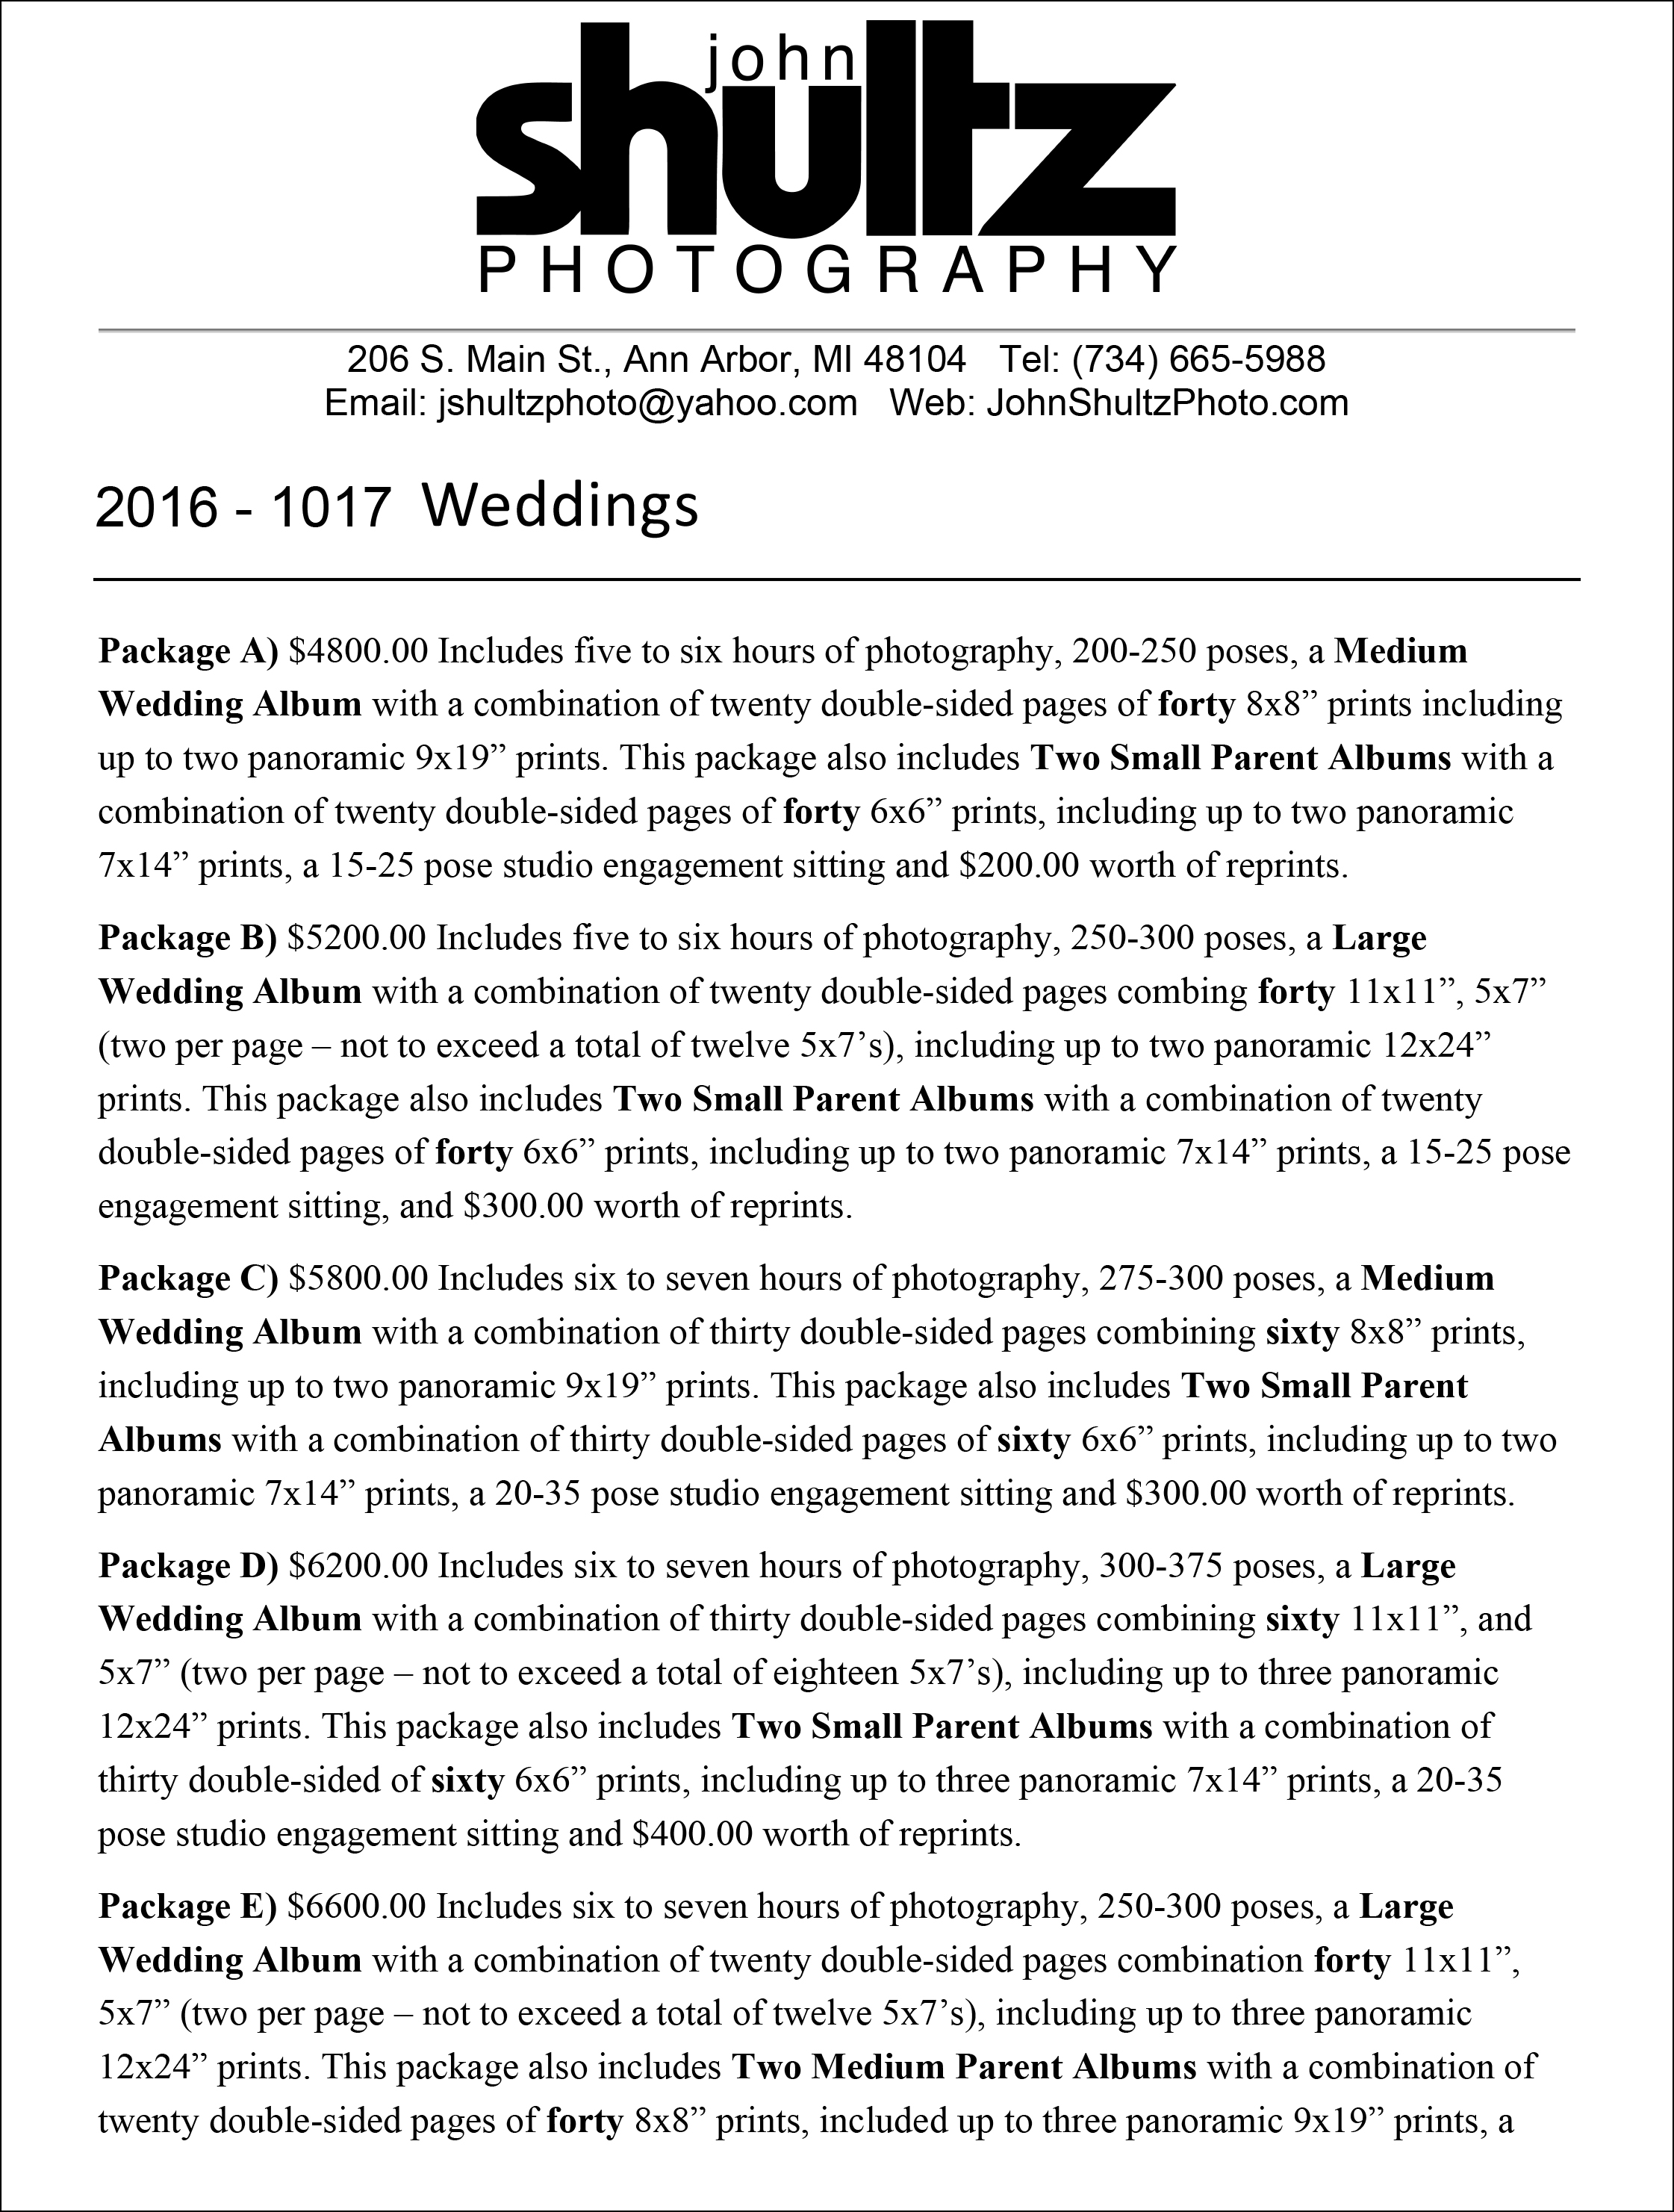 2015 Wedding Pricing-1.jpg